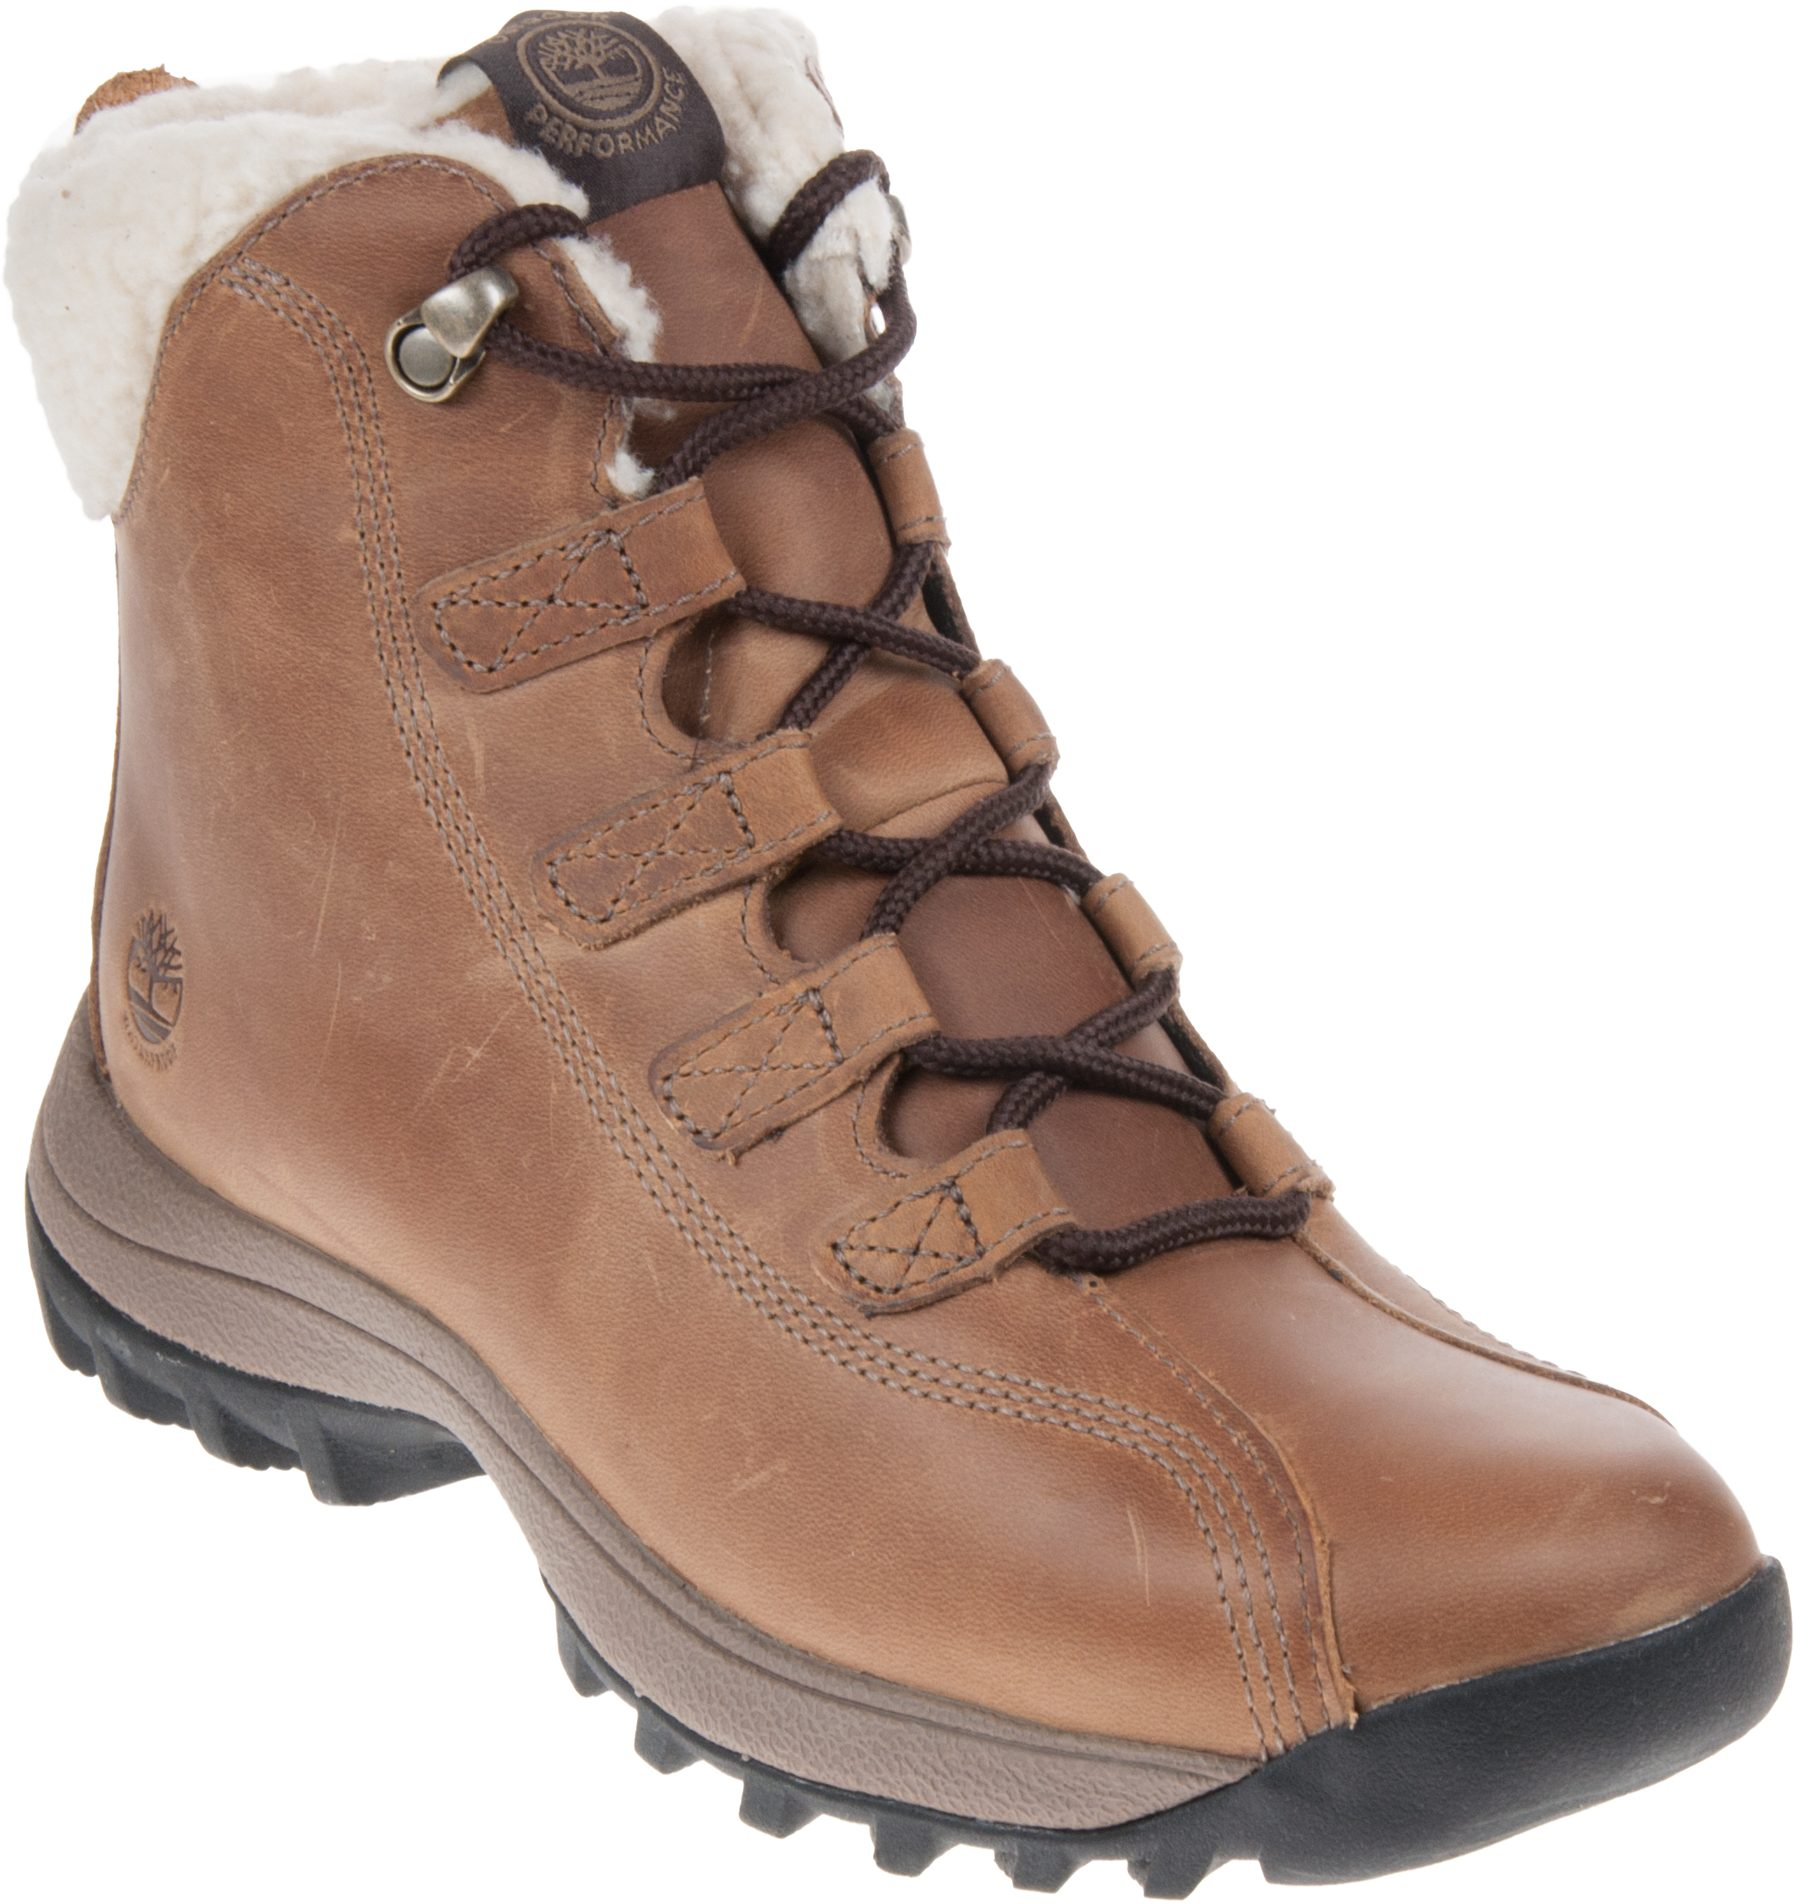 7037590756a Timberland Canard Resort Mid Waterproof Mid Brown 3358R - Outdoor Boots -  Humphries Shoes